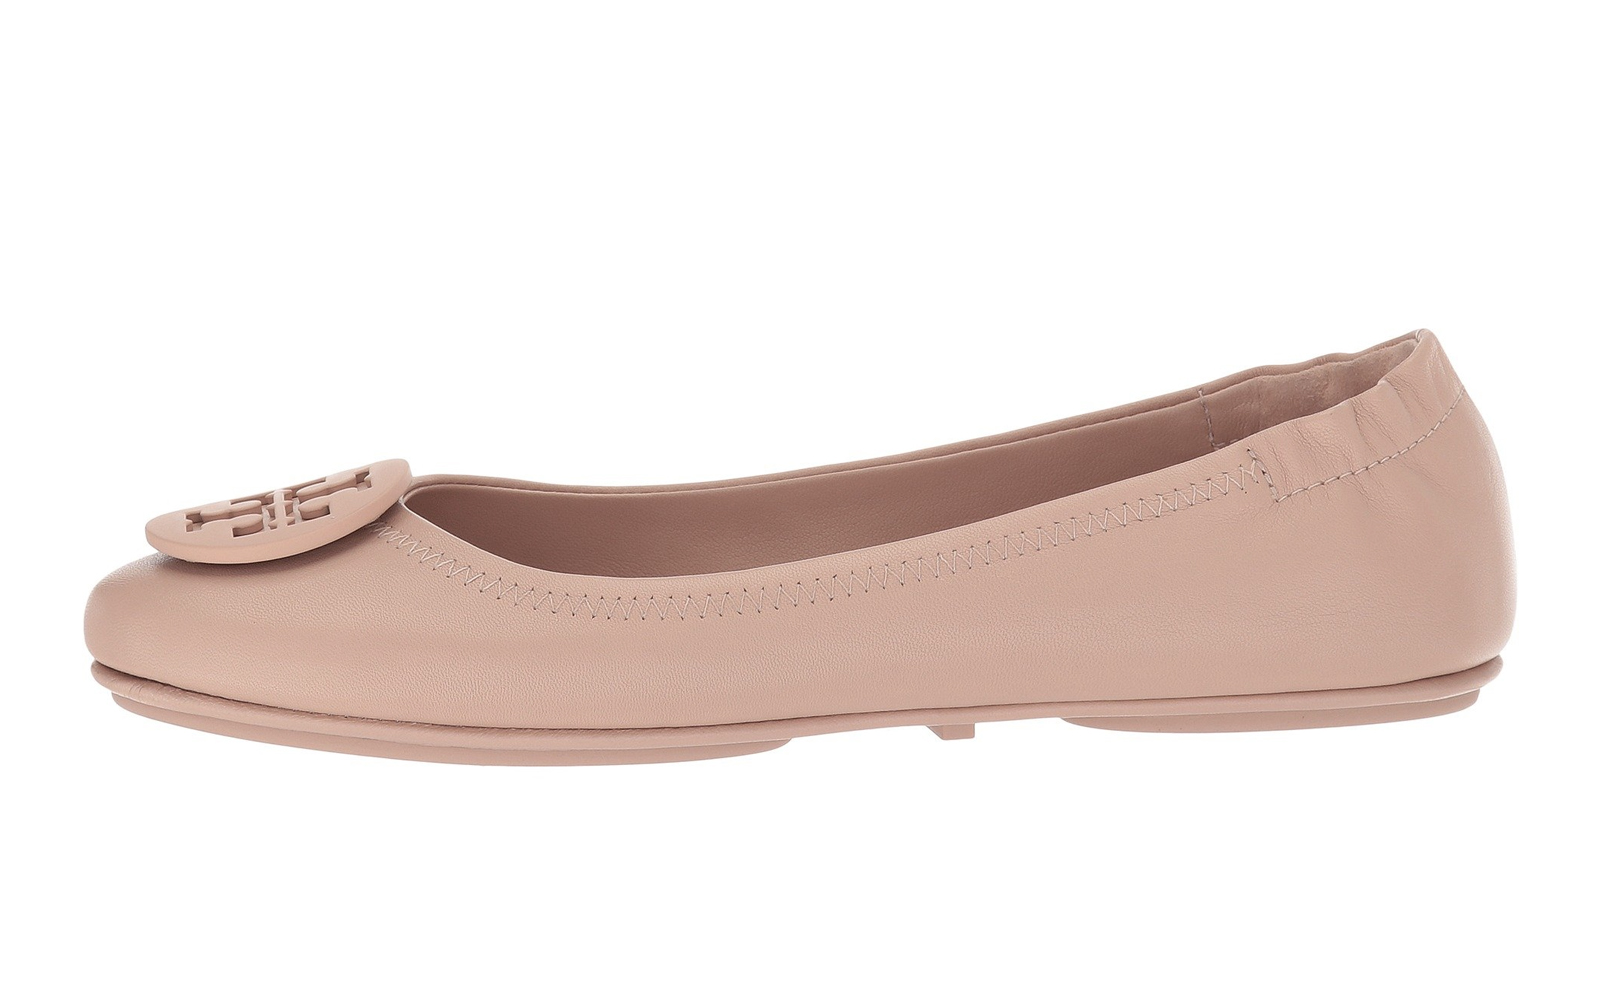 e02e3dc27cd65 The Best Comfortable (and Cute) Flats for Travel | Travel + Leisure